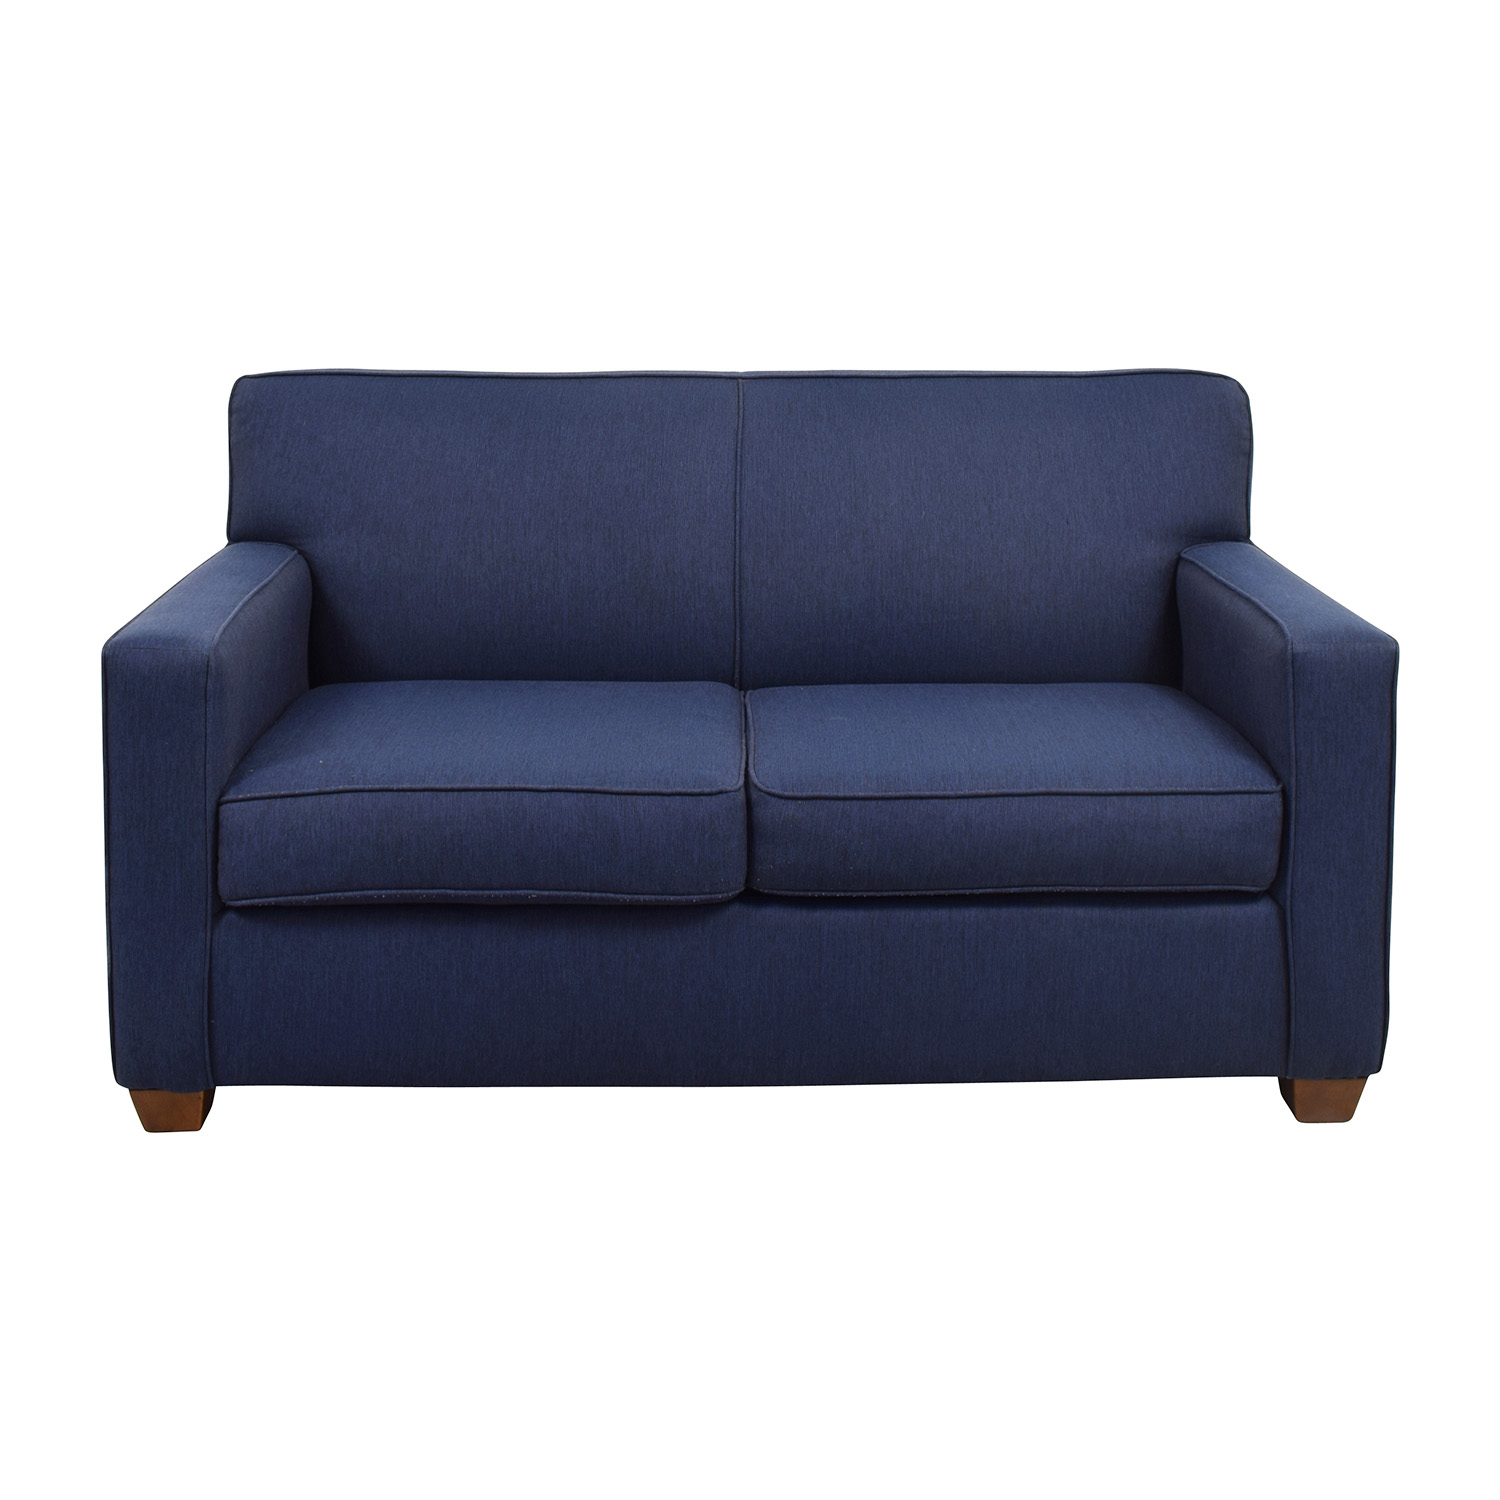 West Elm West Elm Blue Loveseat used